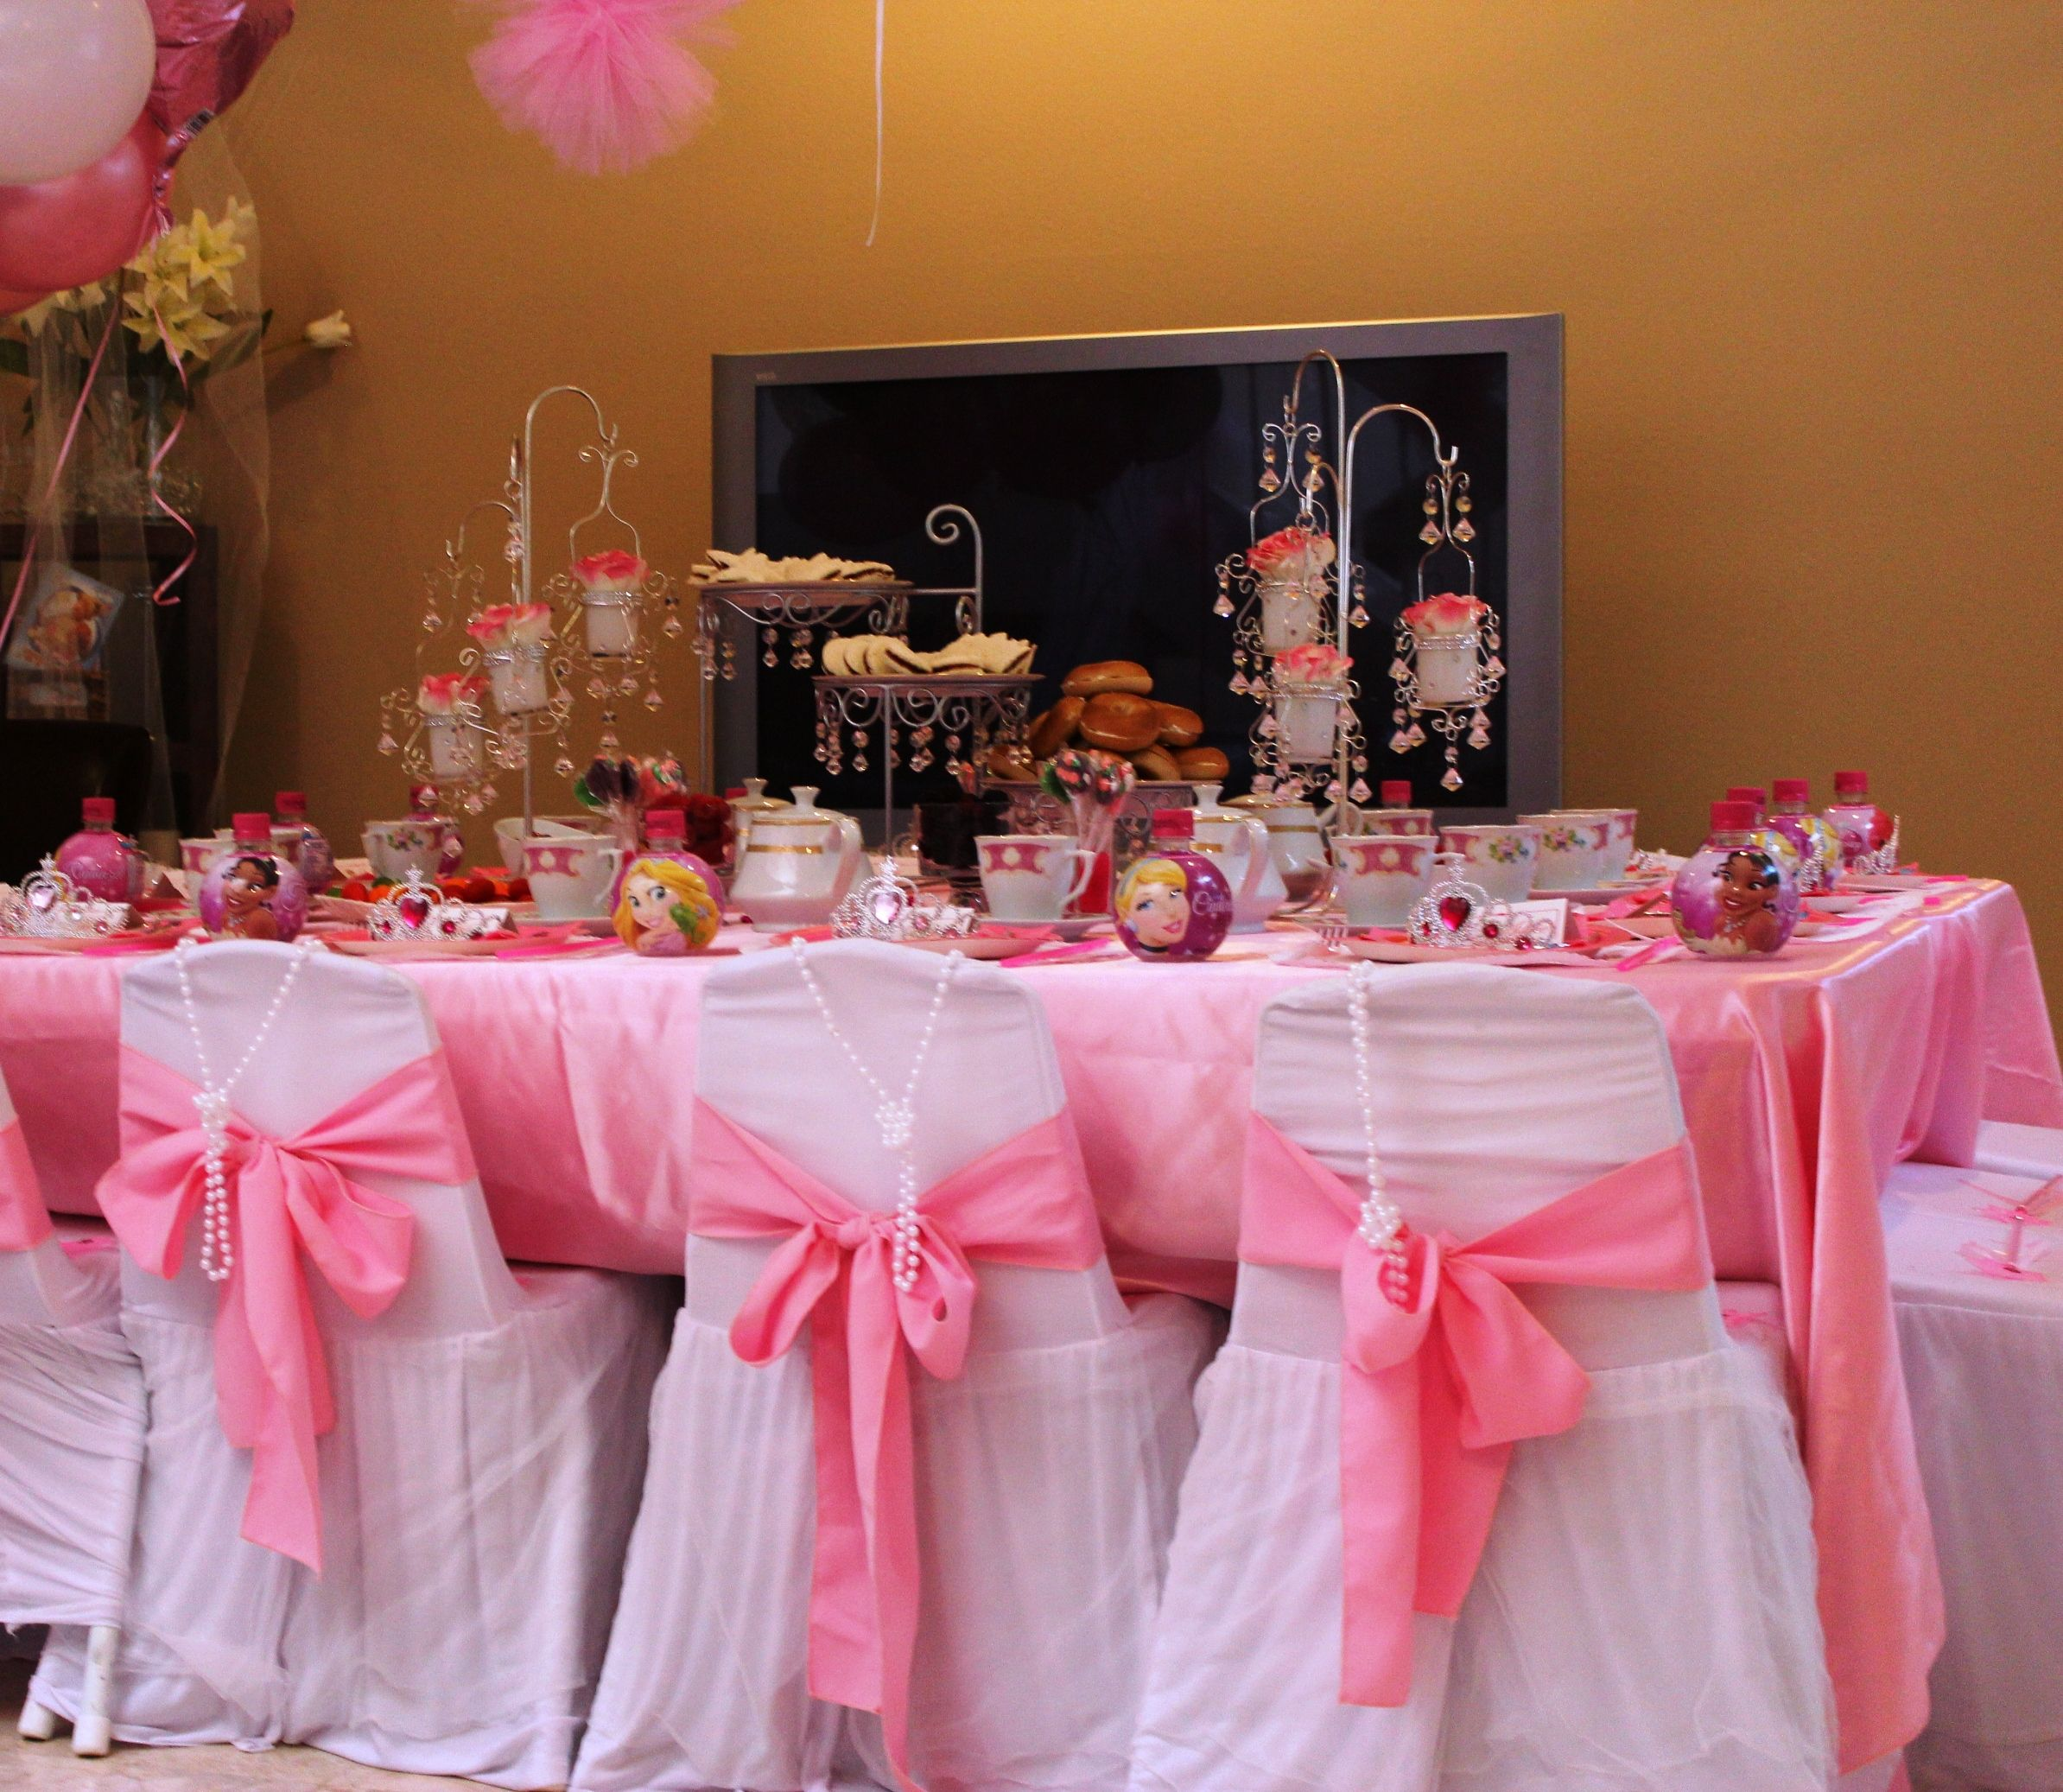 Princess Tea Party Ideas, Kid Sized Tables And Chairs With Princess Style  Chair Covers,